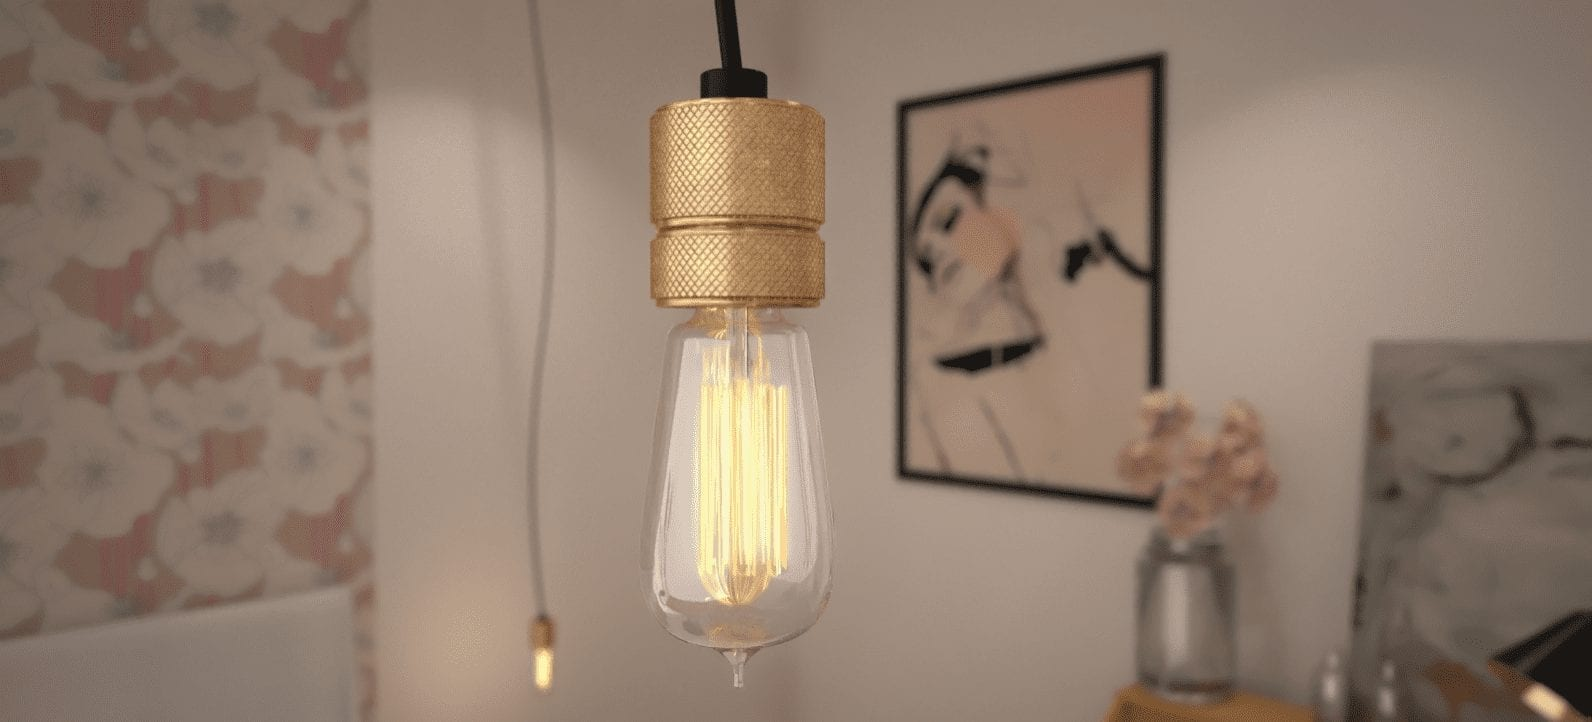 National Design Academy graduate Anita Brown shares her top 5 tips on how to render a realistic interior render. 3D Visualisation Edison Bulb